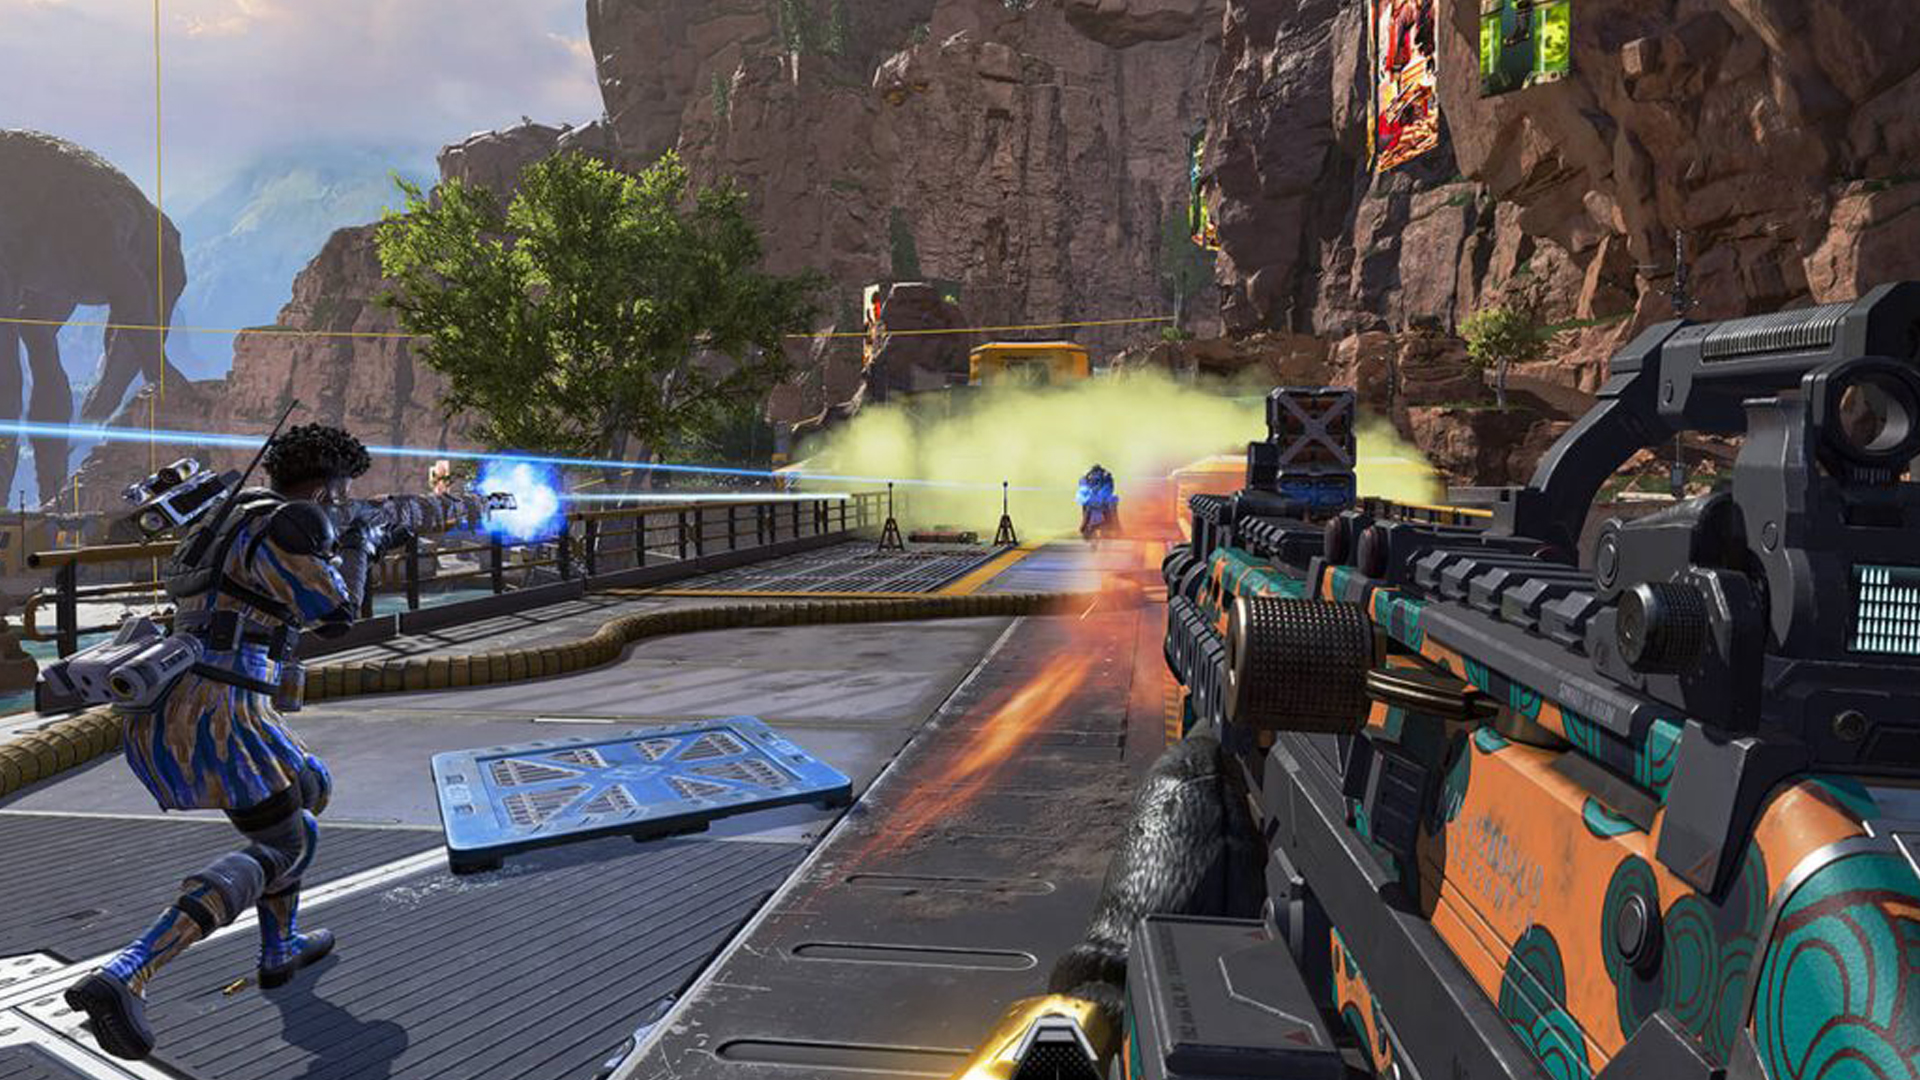 How to check if the Apex Legends servers are down